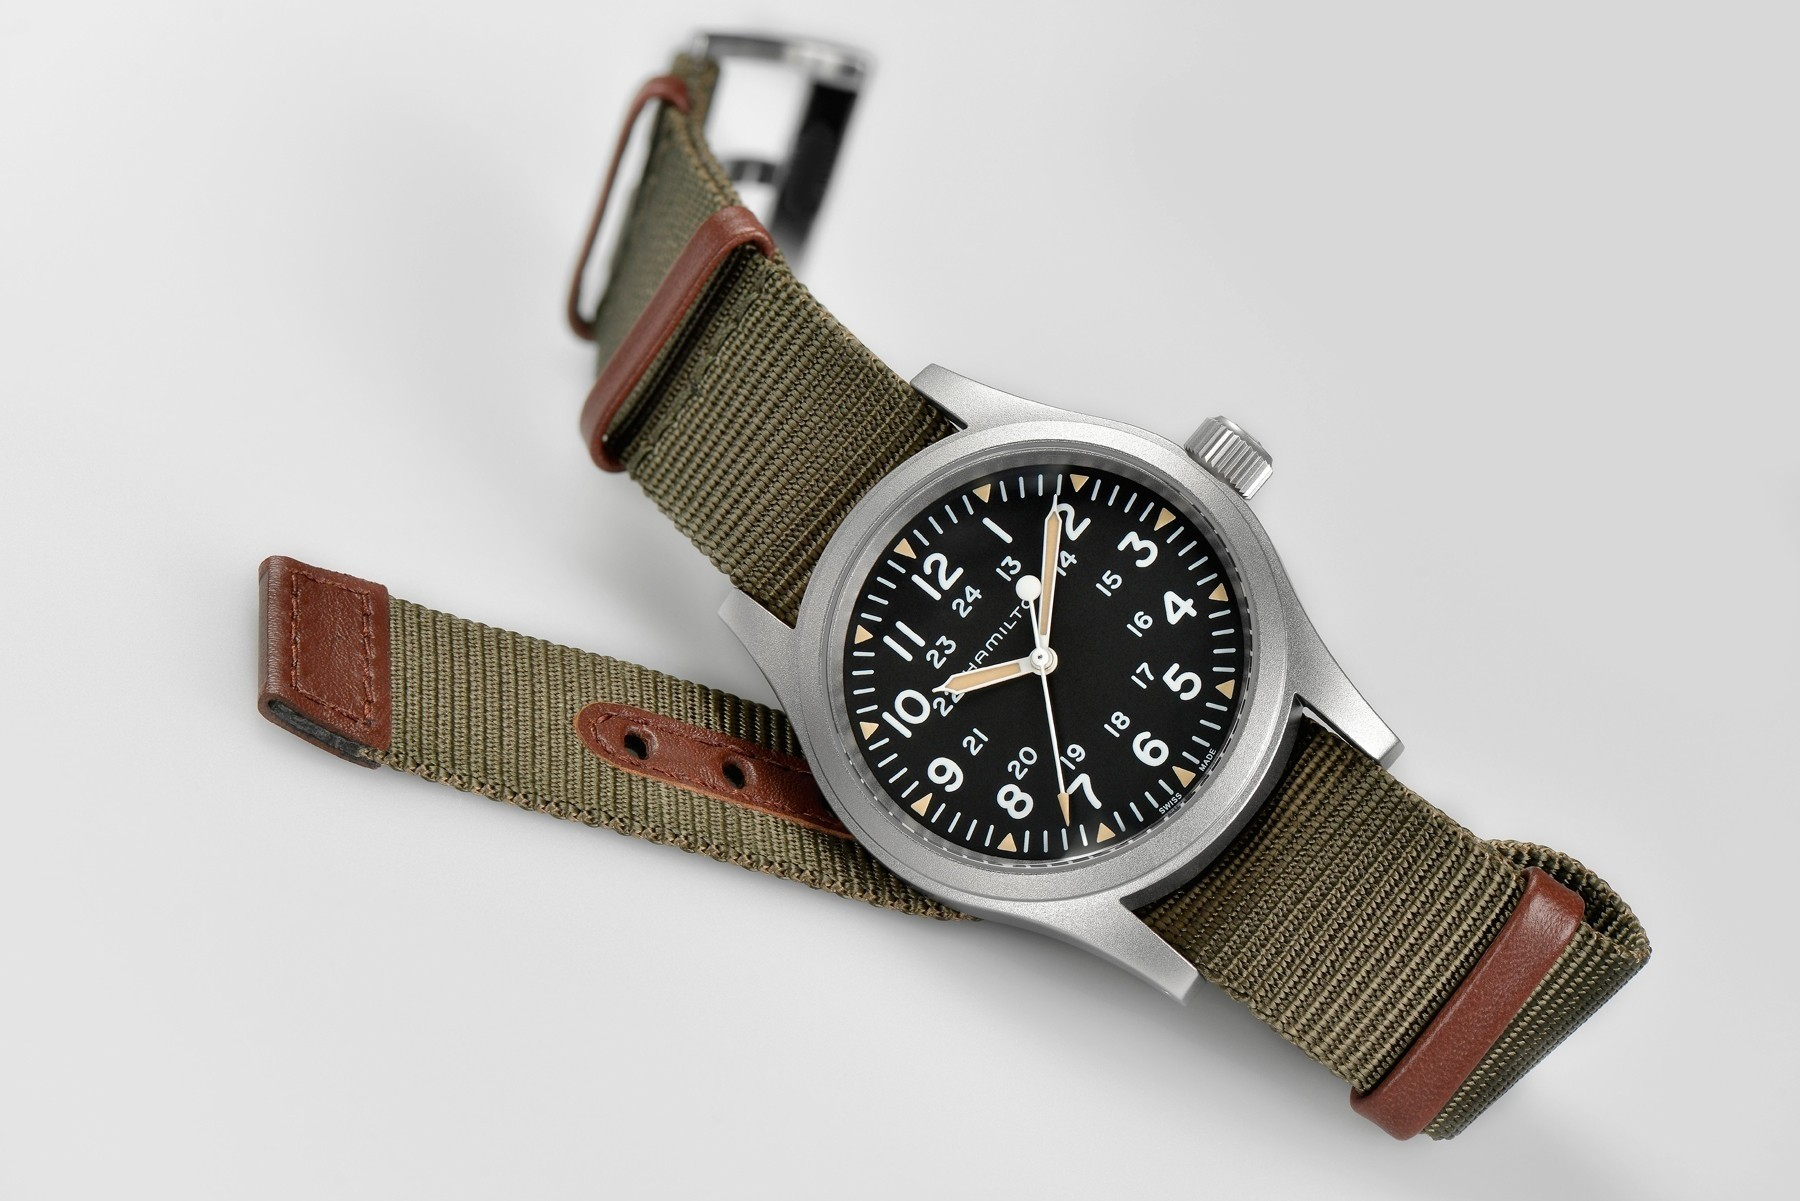 Hamilton-Khaki-Field-Mechanical-38-mm-value-proposition-4.jpg